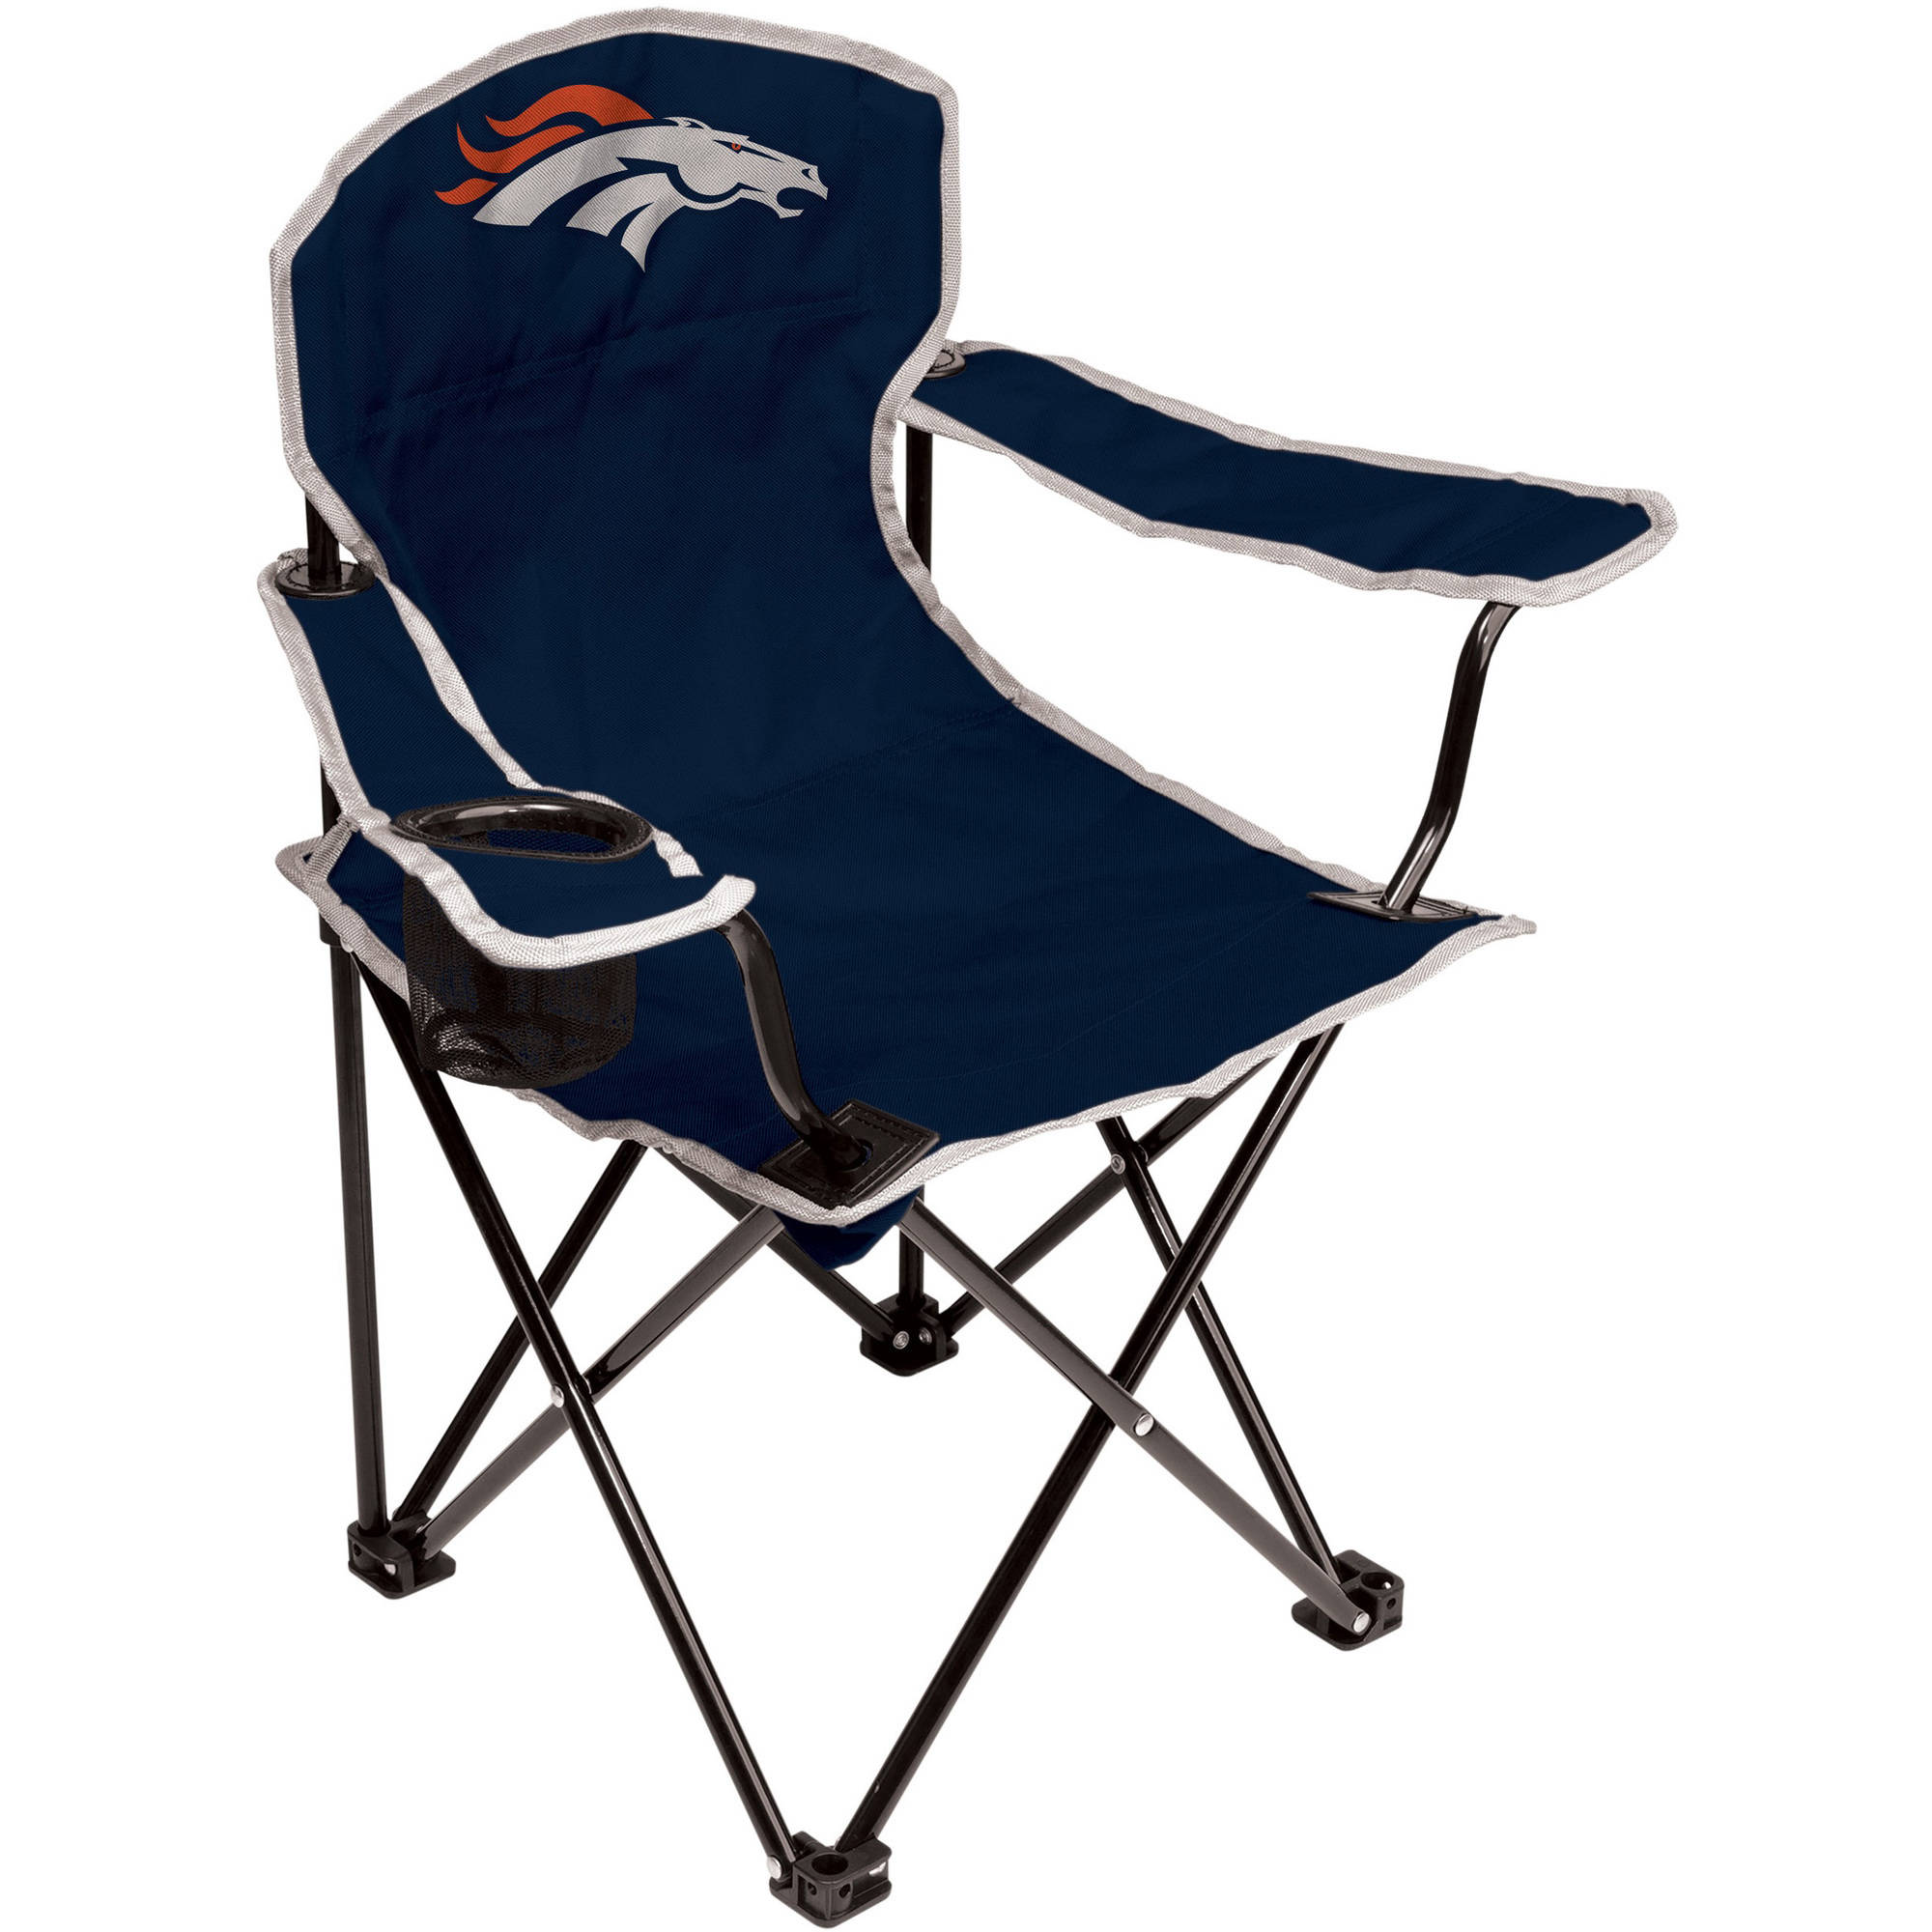 NFL Denver Broncos Youth Size Tailgate Chair from Coleman by Rawlings by Rawlings